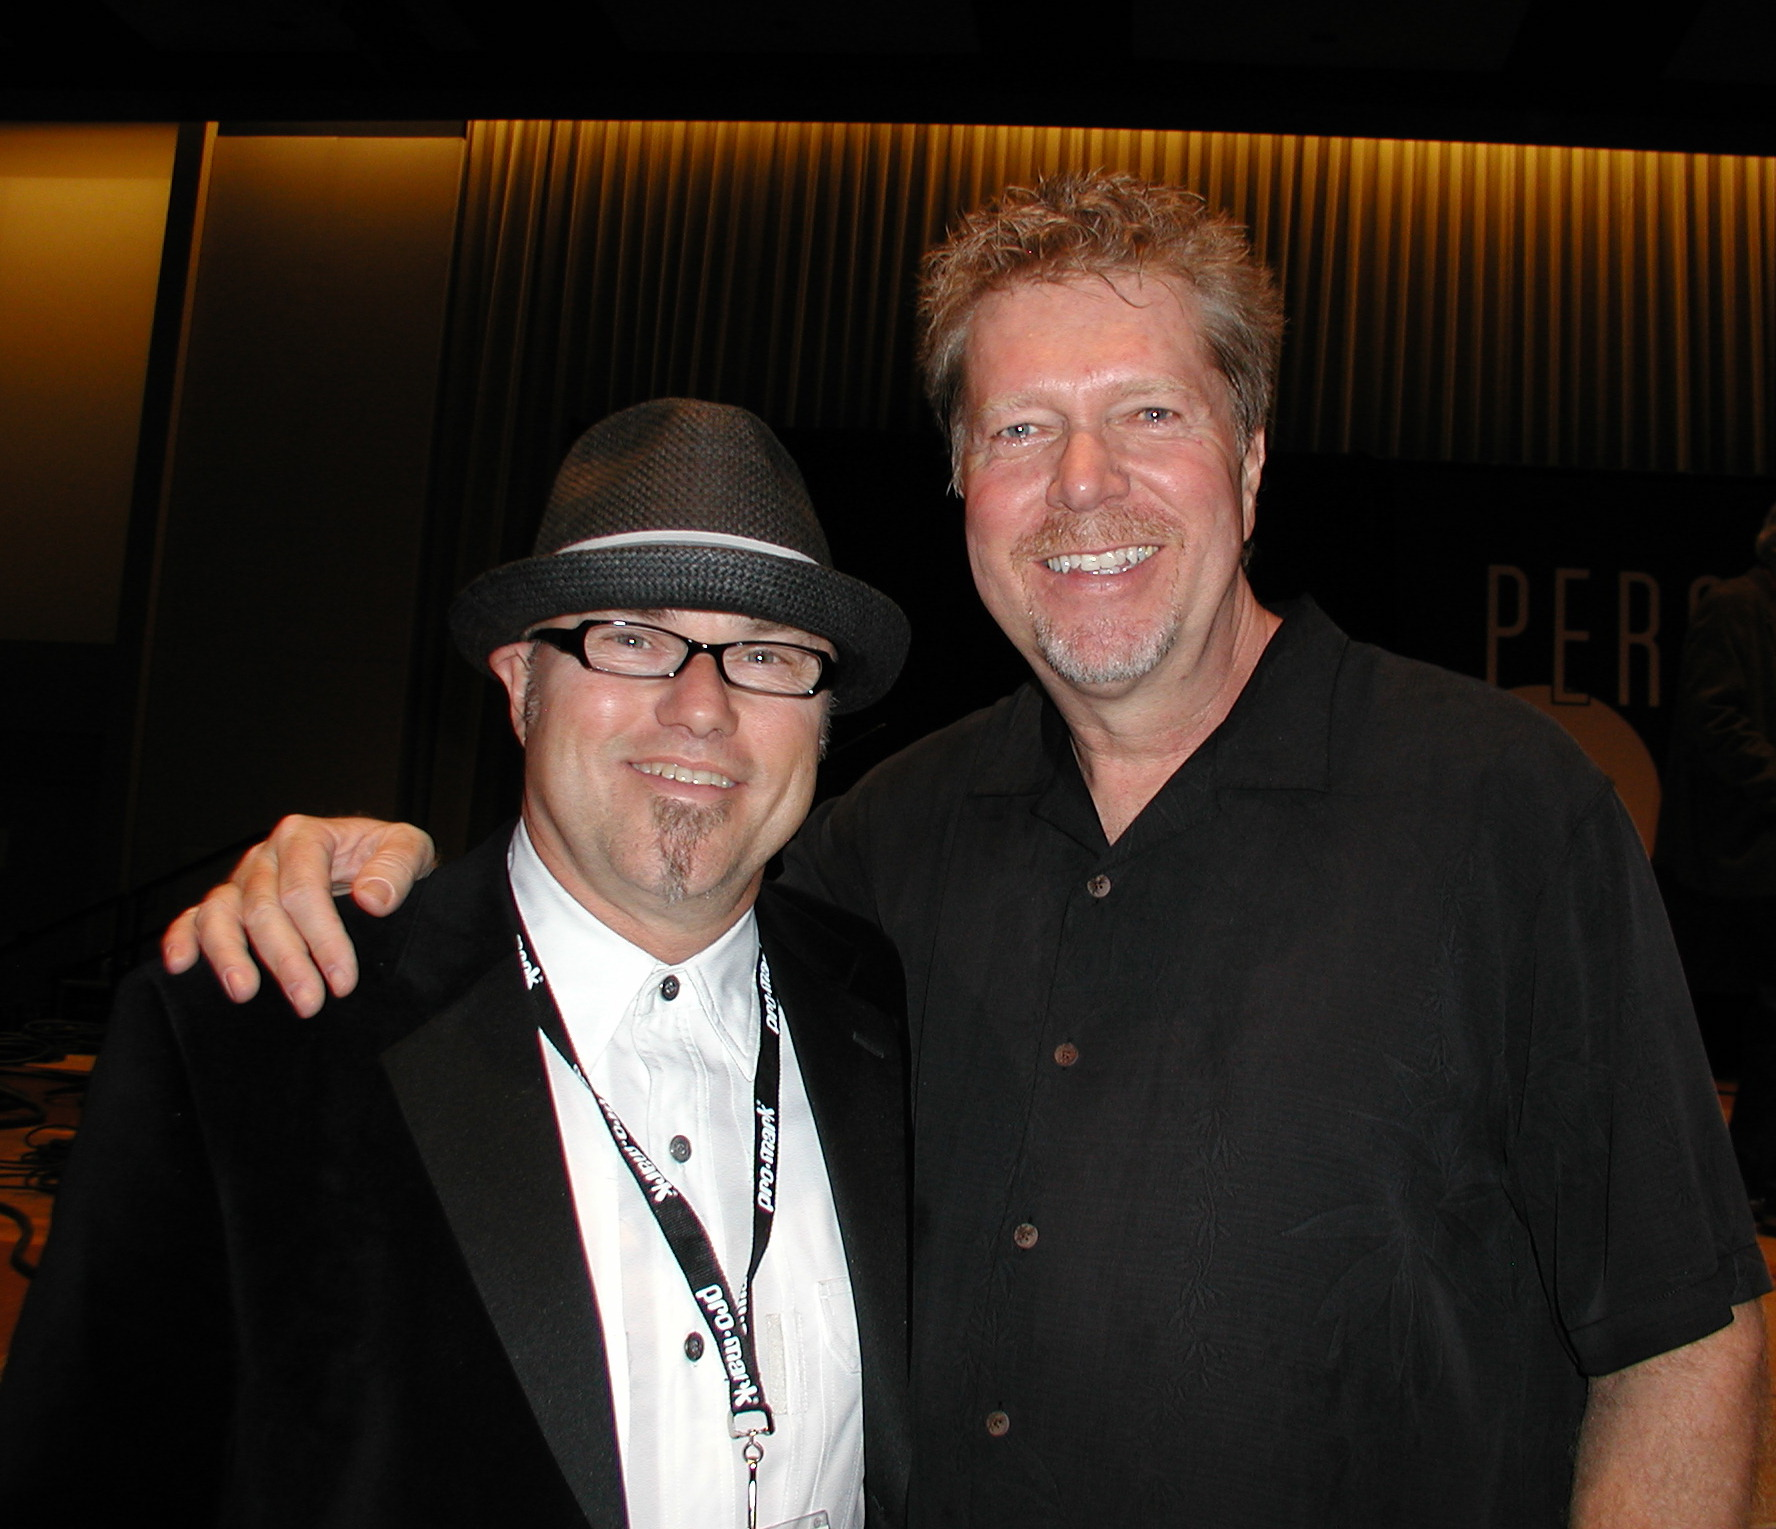 Edward with J.R. Robinson at PASIC, 2010